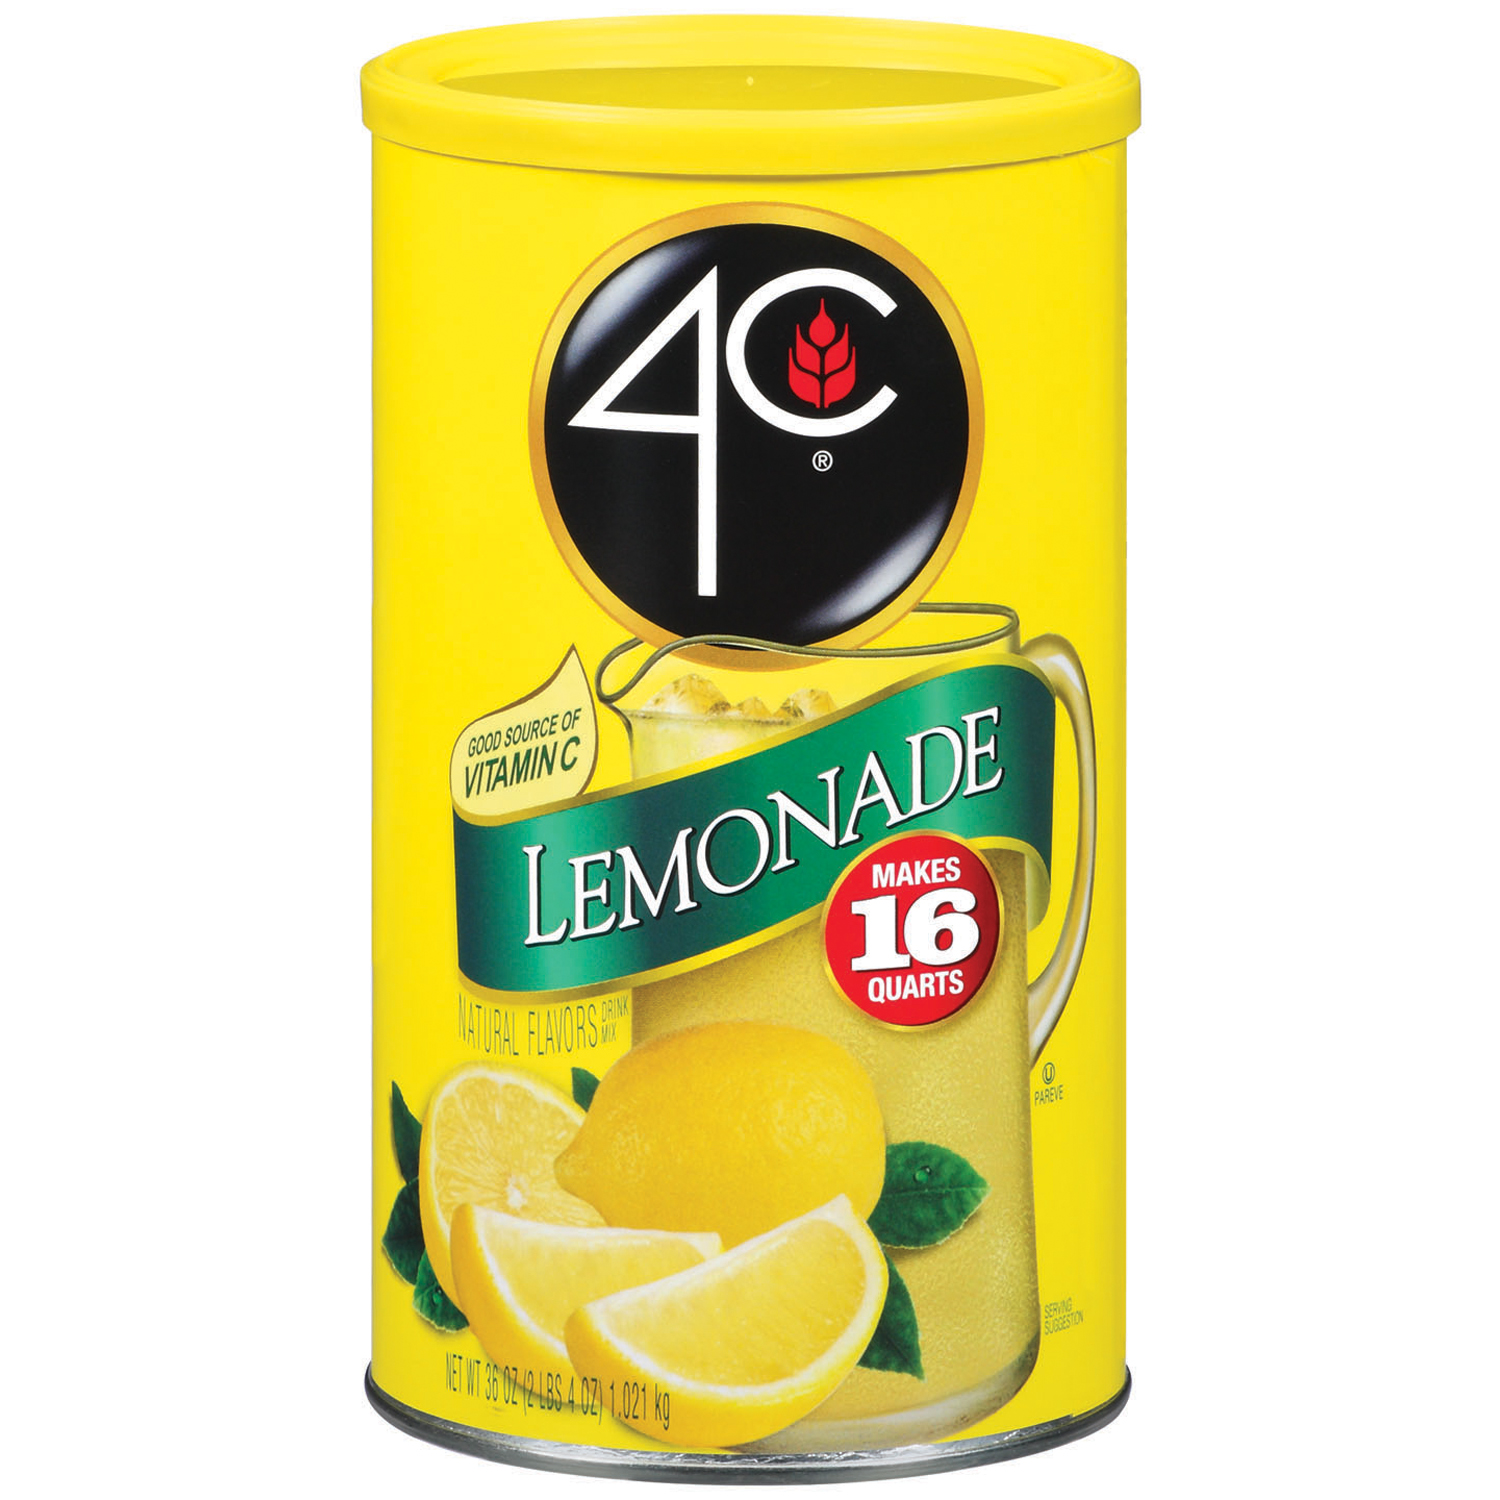 Image of 4C Drink Mix, Lemonade, 36 Oz, 1 Count